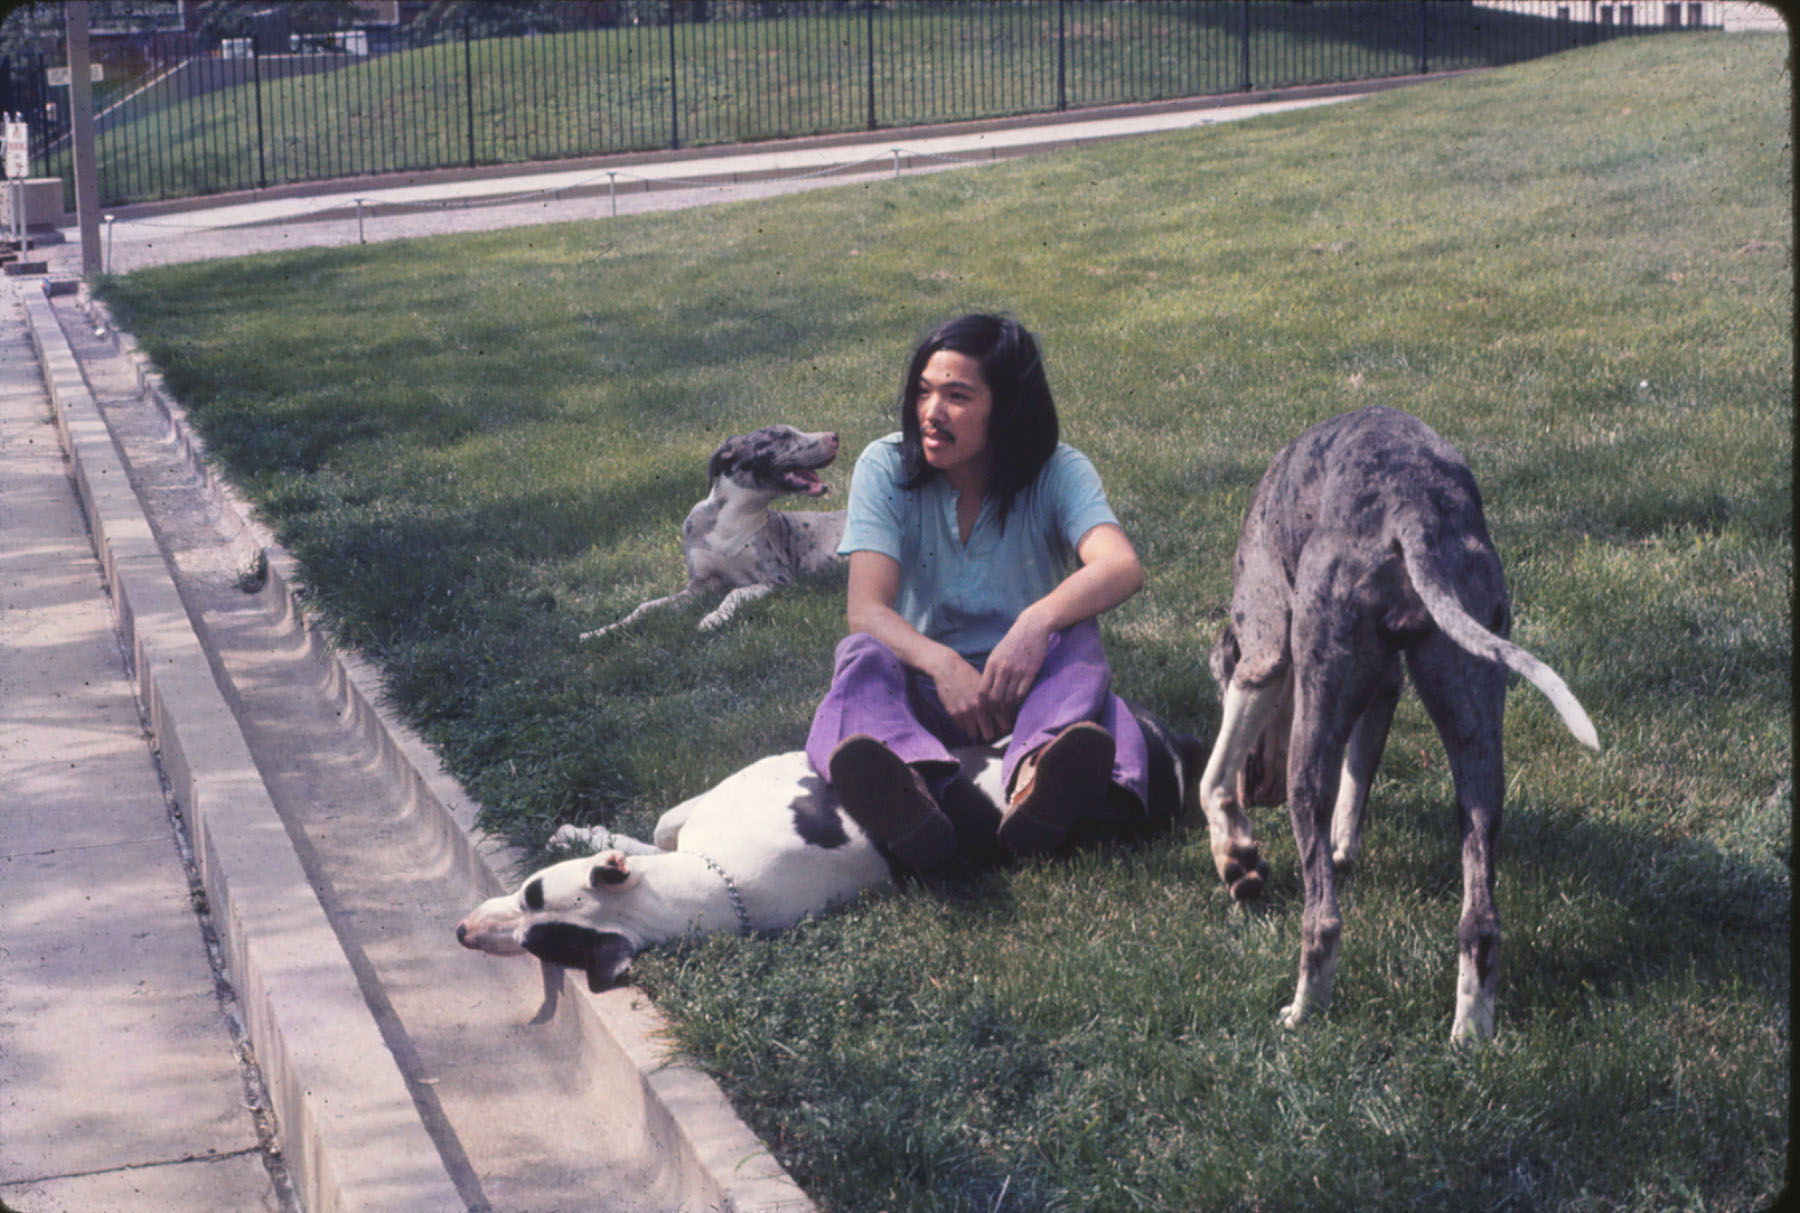 1973  Houston and Wooster on NYU grass Barney with the great danes Iko, Harlot, and Earth